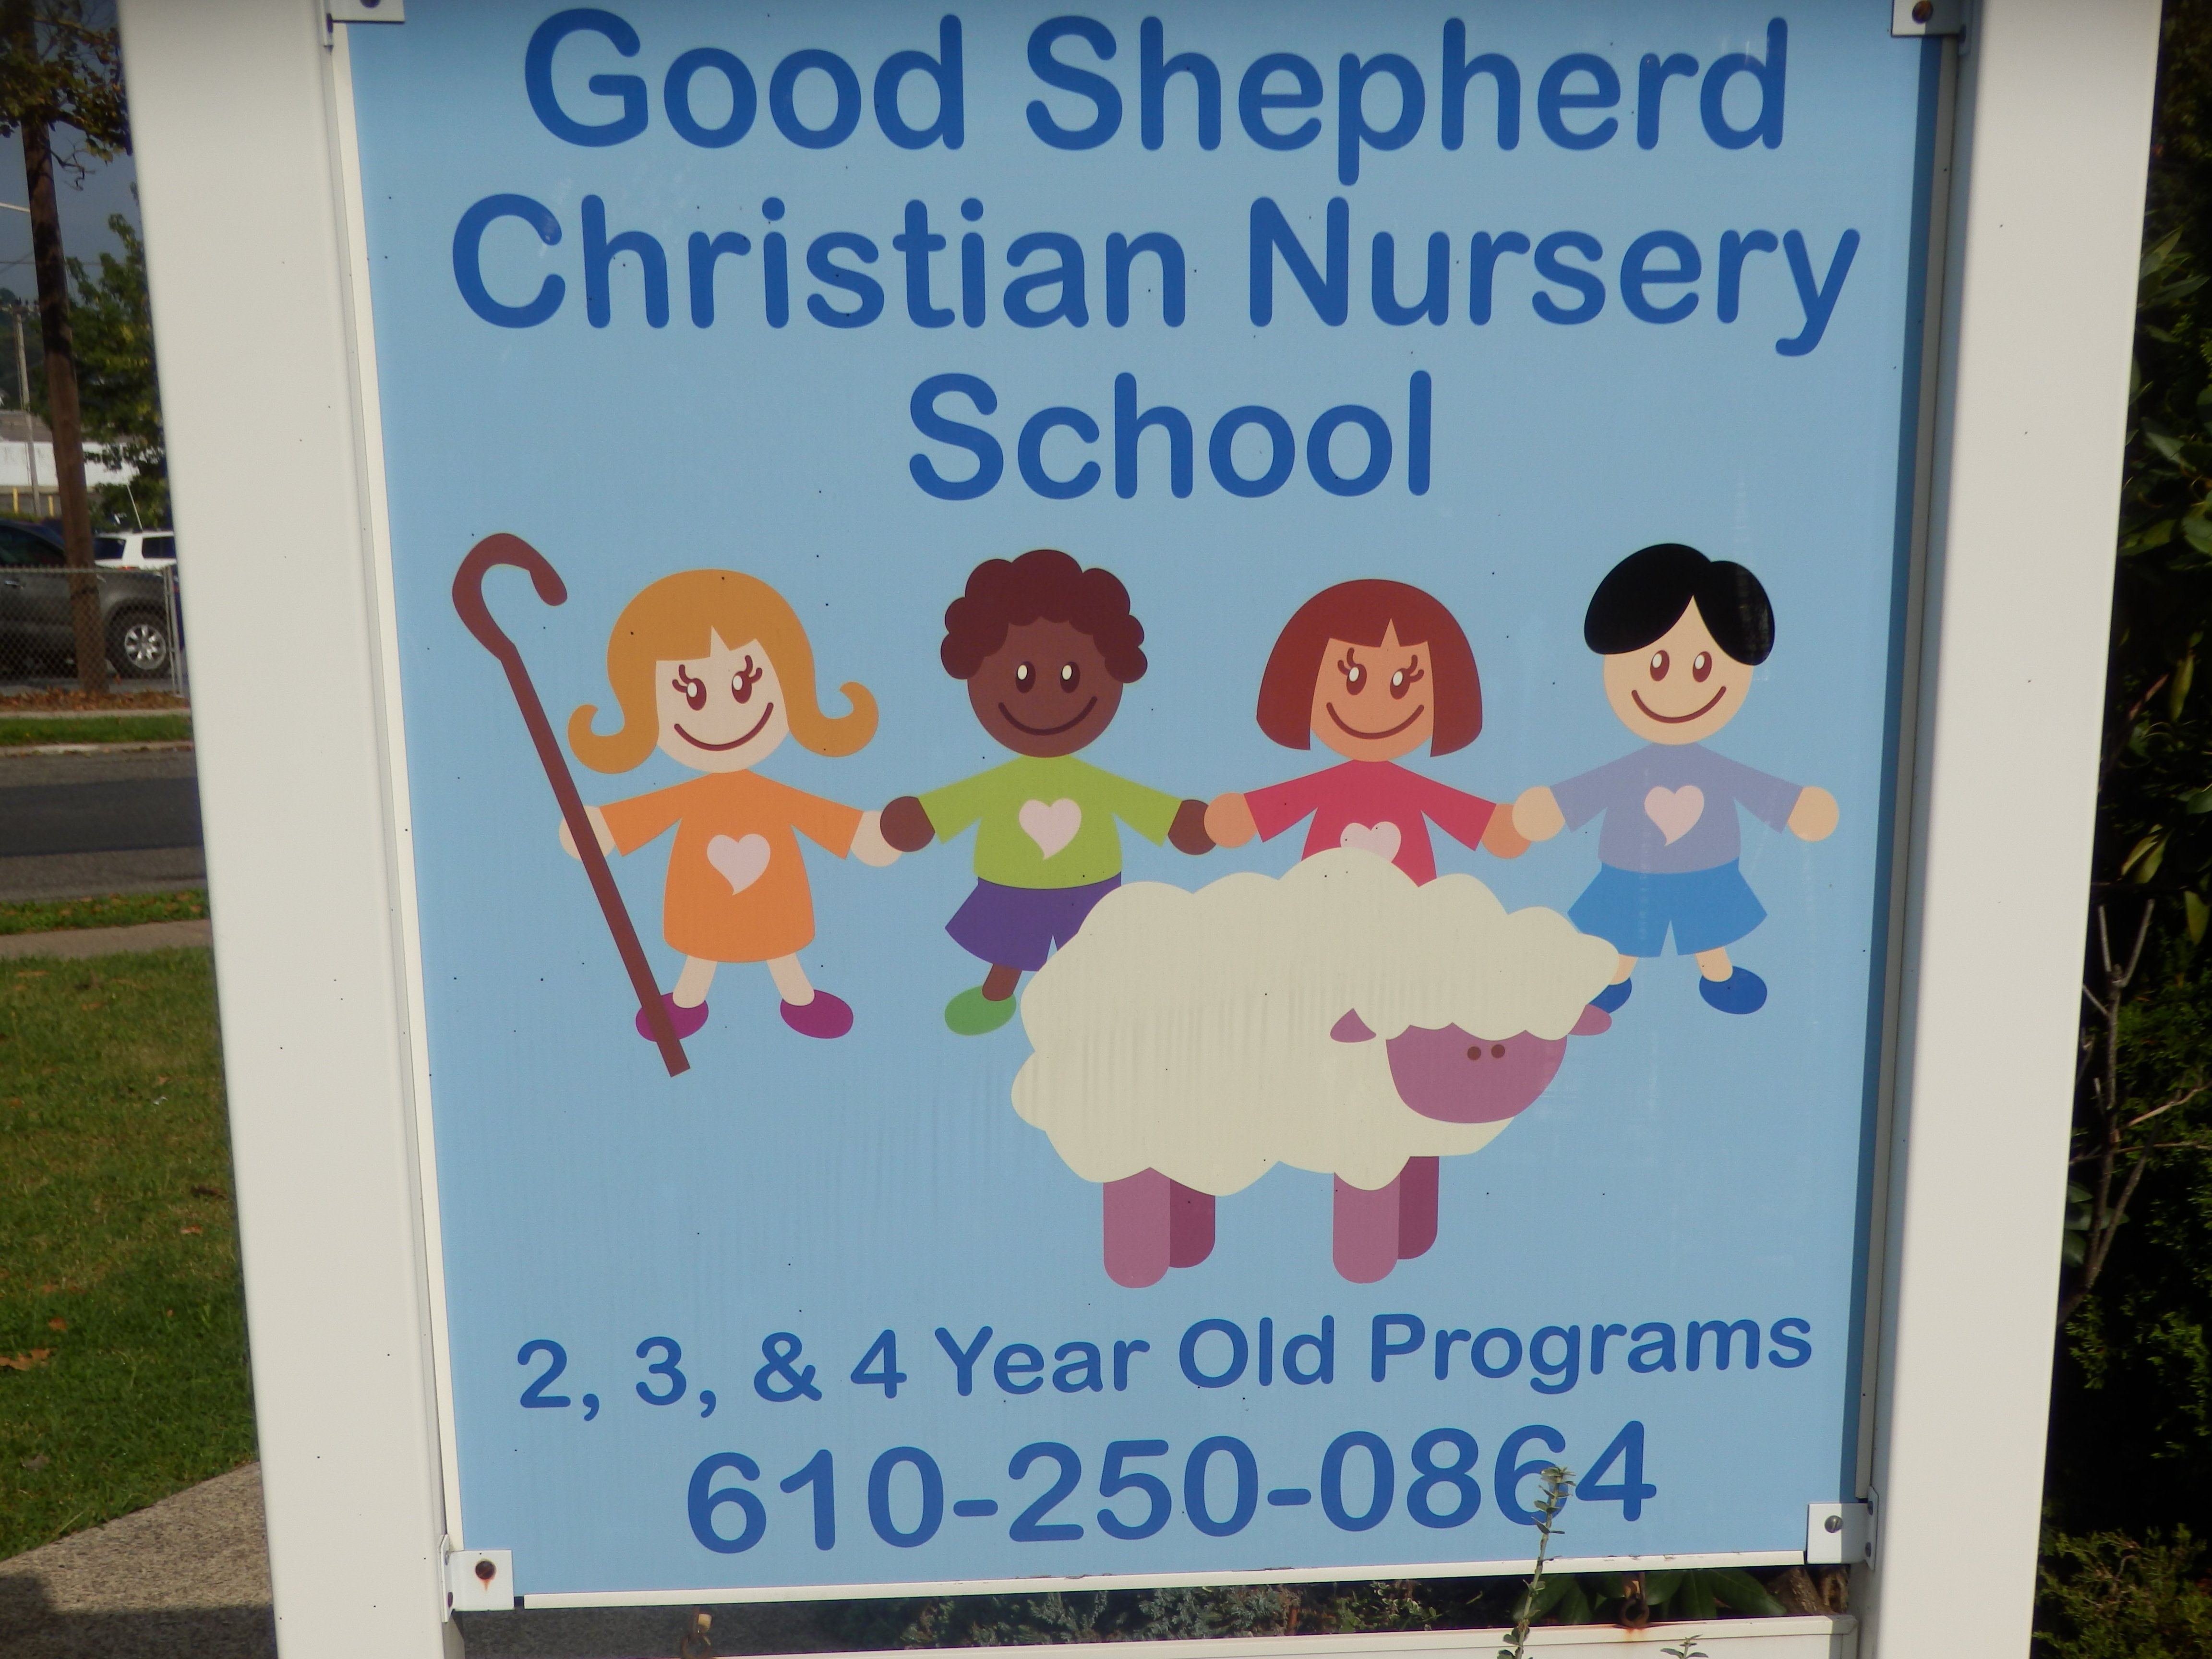 Good Shepherd Christian Nursery School